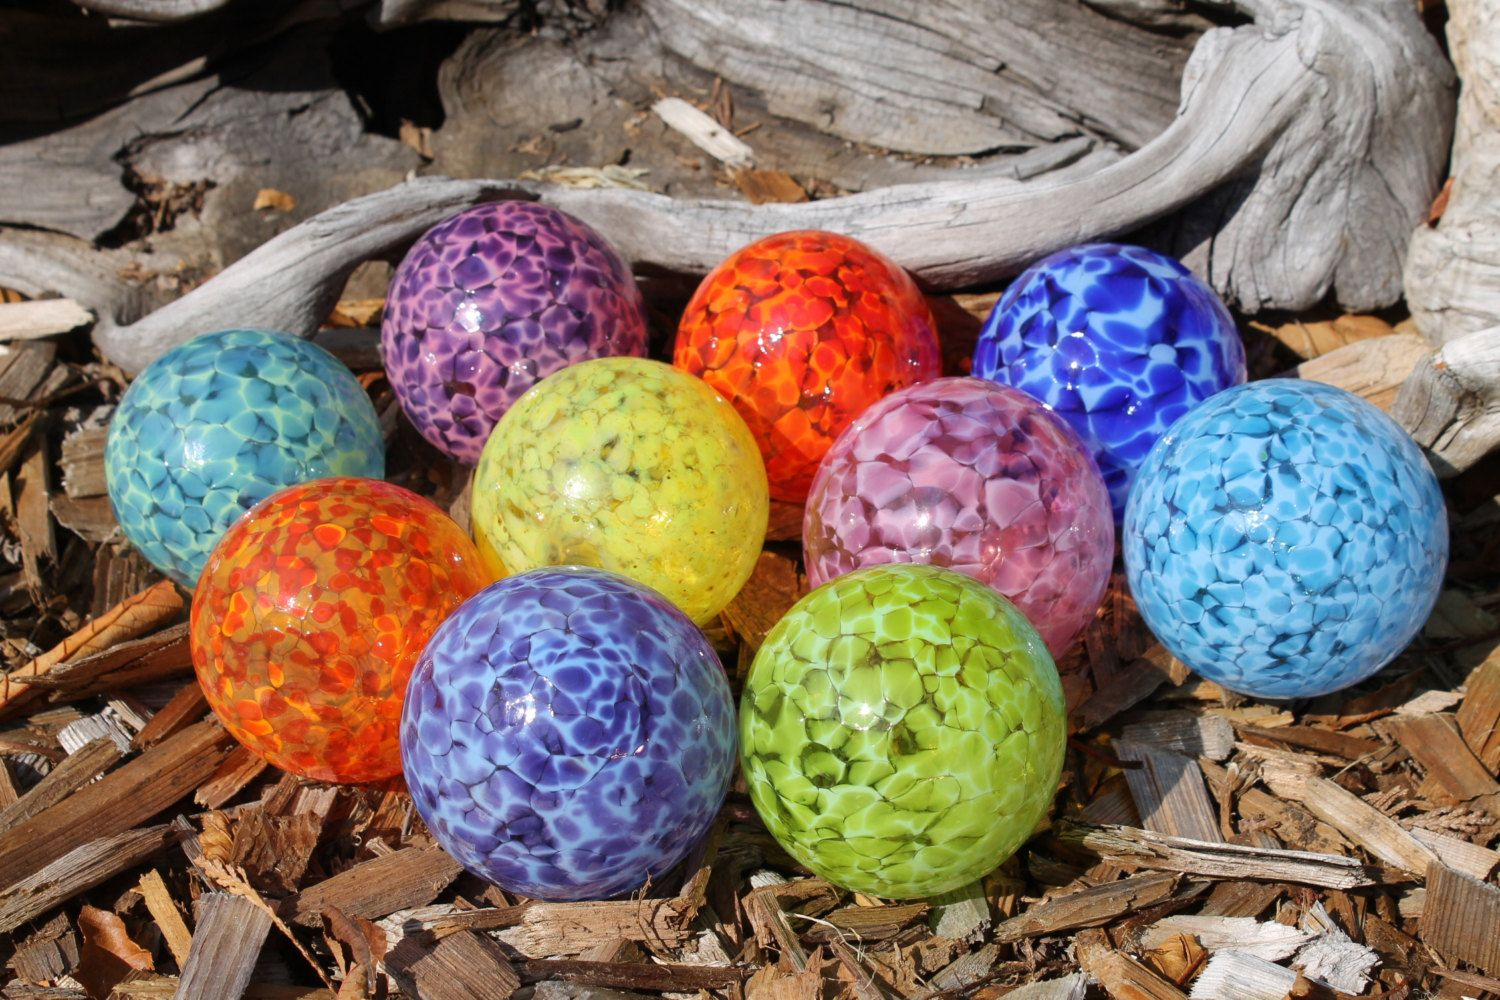 Set Of 10 Small Colorful Hand Blown Glass Floats Garden Balls Gazing Glass Orbs In Shades Of The Rainbow Outdoor Art Glass Floats Hand Blown Hand Blown Glass